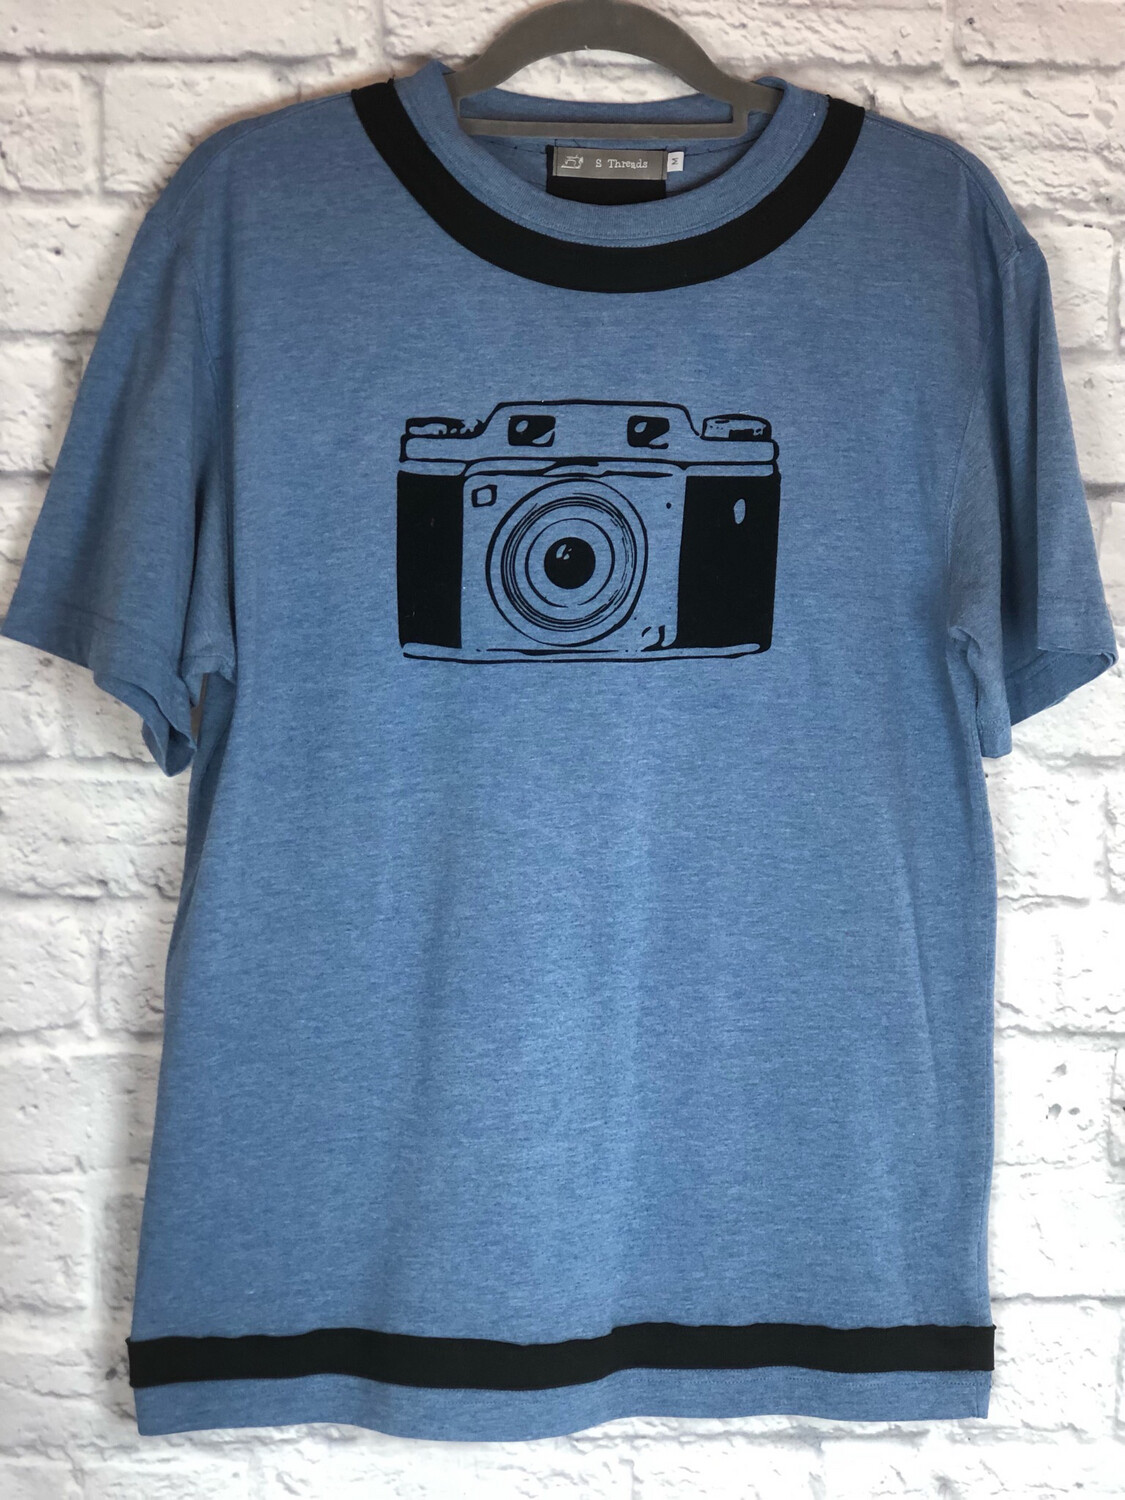 S Threads Upcycled Tshirt Camera Tee Size Mens M